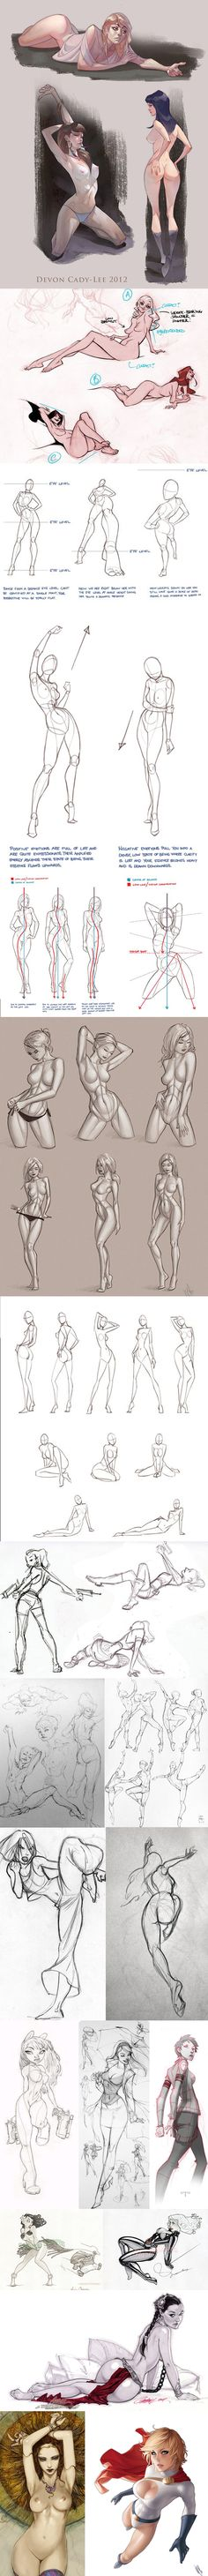 great pose info - female Body study - anatomical reference - woman in different positions - drawing reference